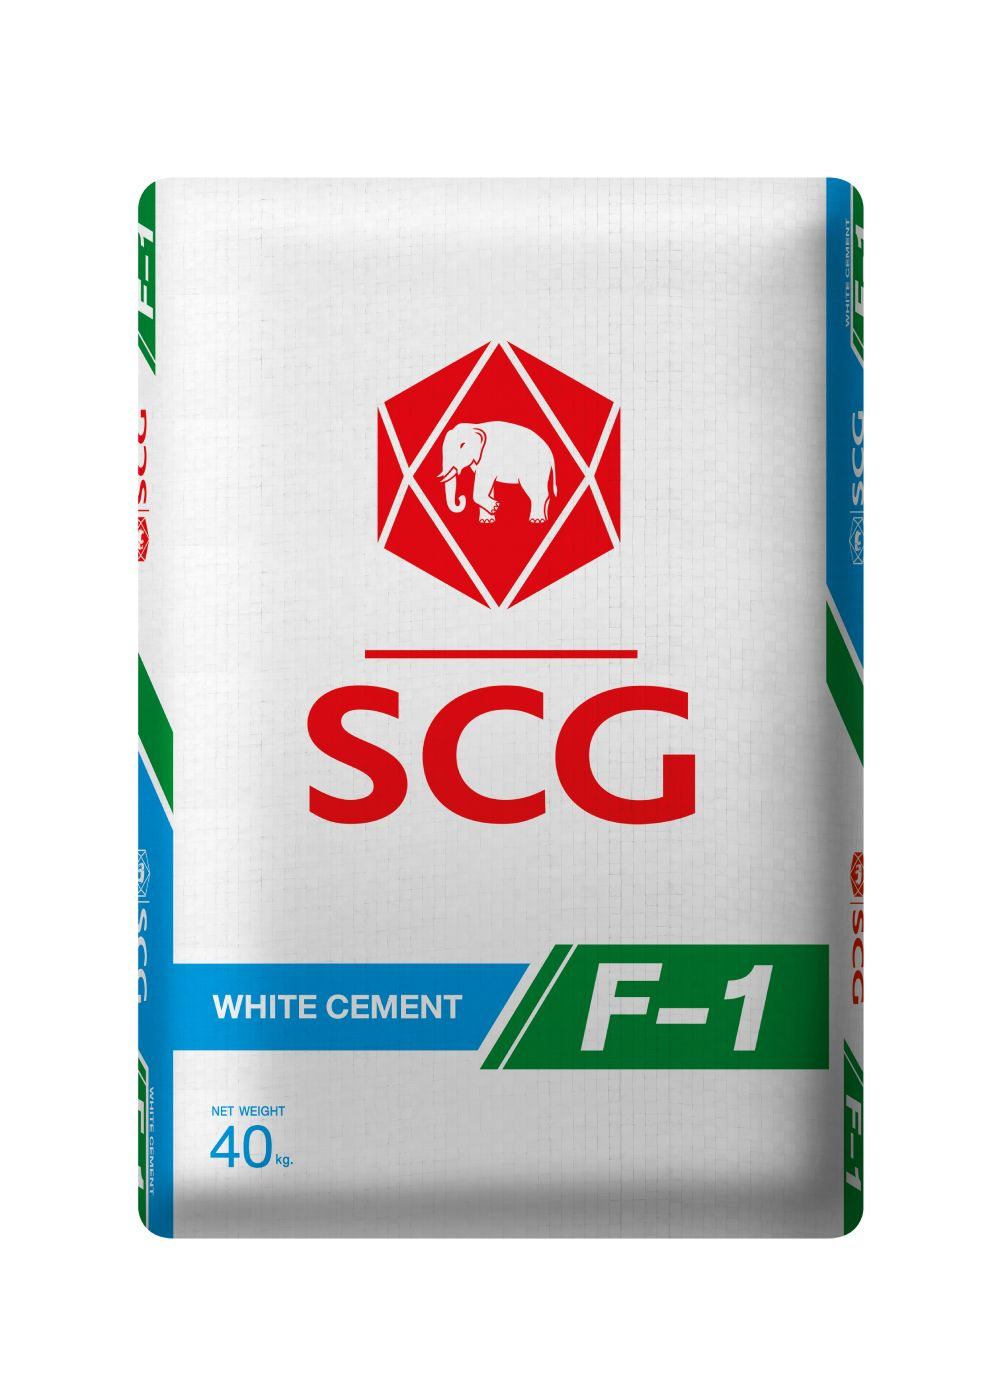 Scg Cement Manufacturer Cement Mortar Plaster Made In